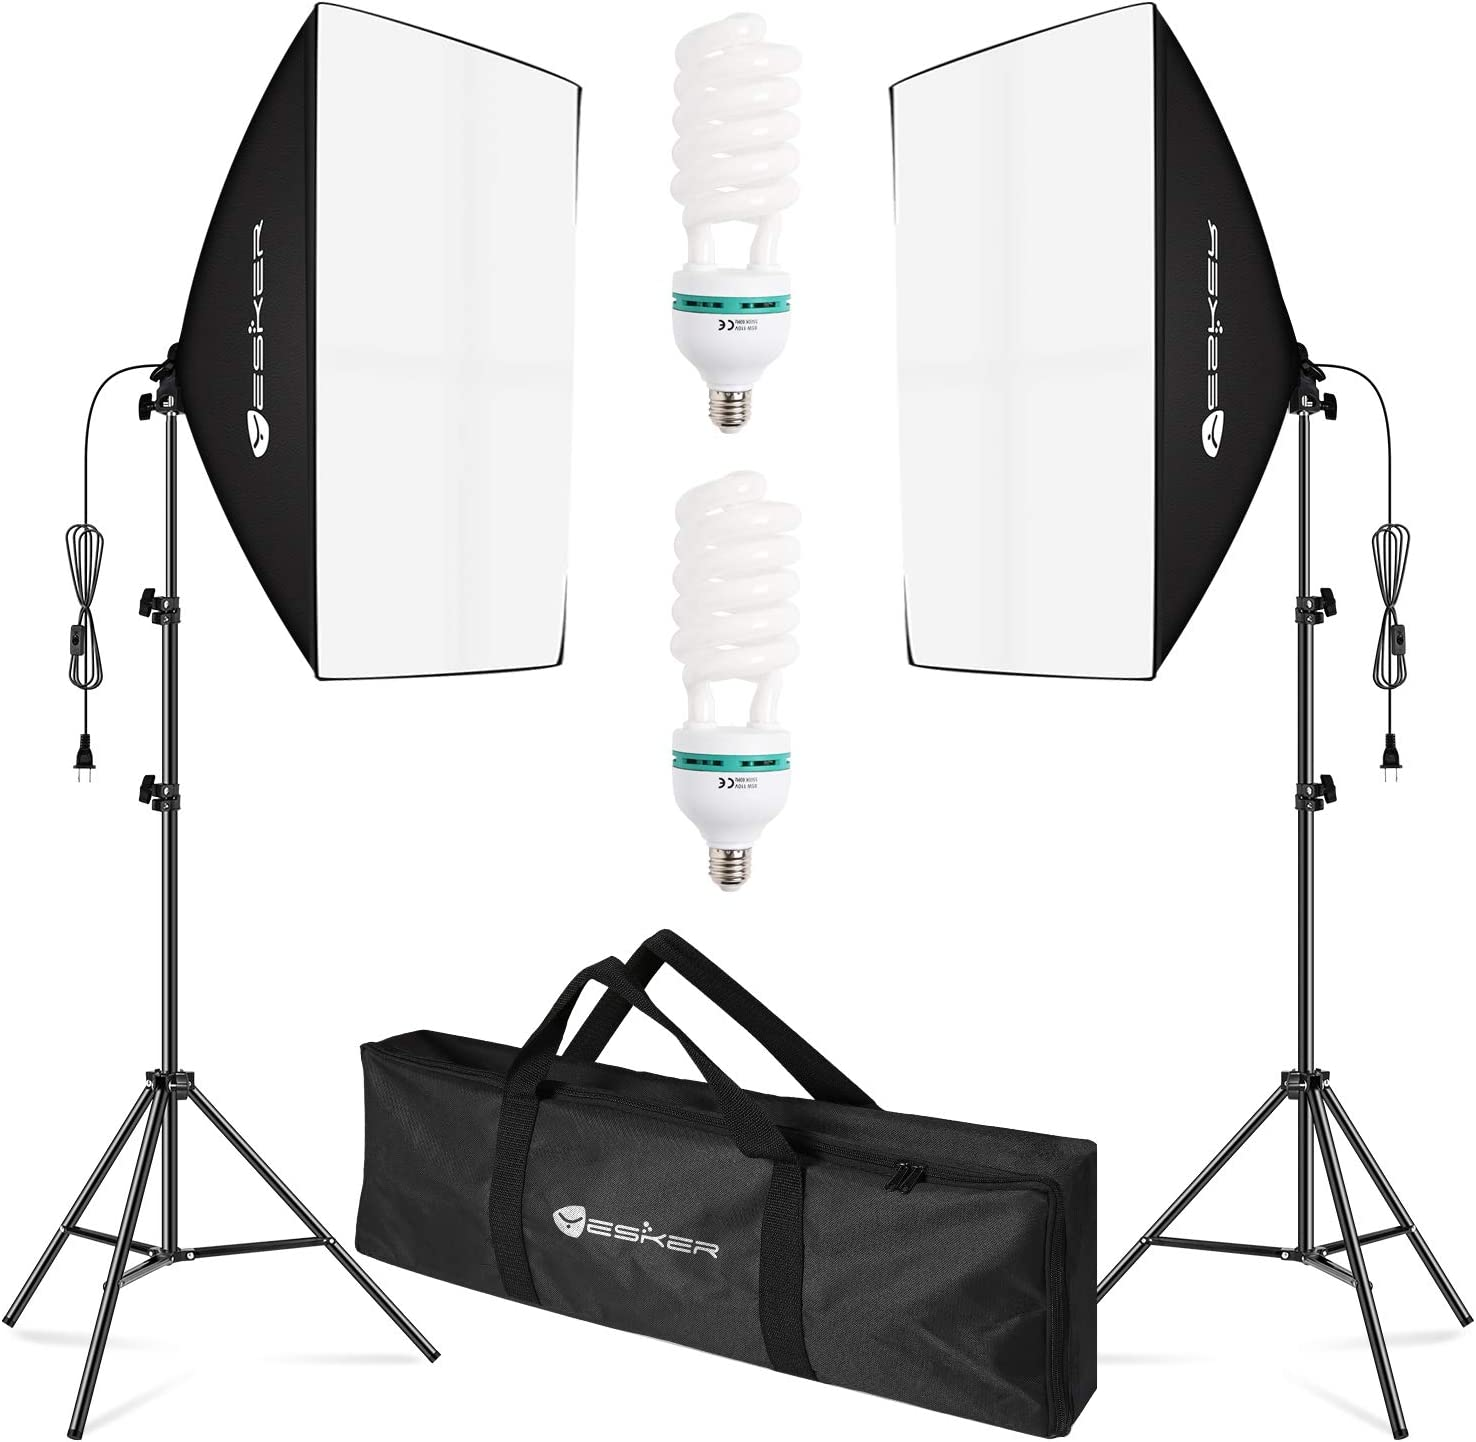 Yesker Softbox Lighting Kit 2pcs 20x28 inch Professional Photo Studio Photography Equipment Continuous Lighting with 2X 85W 5500K E27 Socket Bulb for Filming Portrait Shooting Fashion Photography